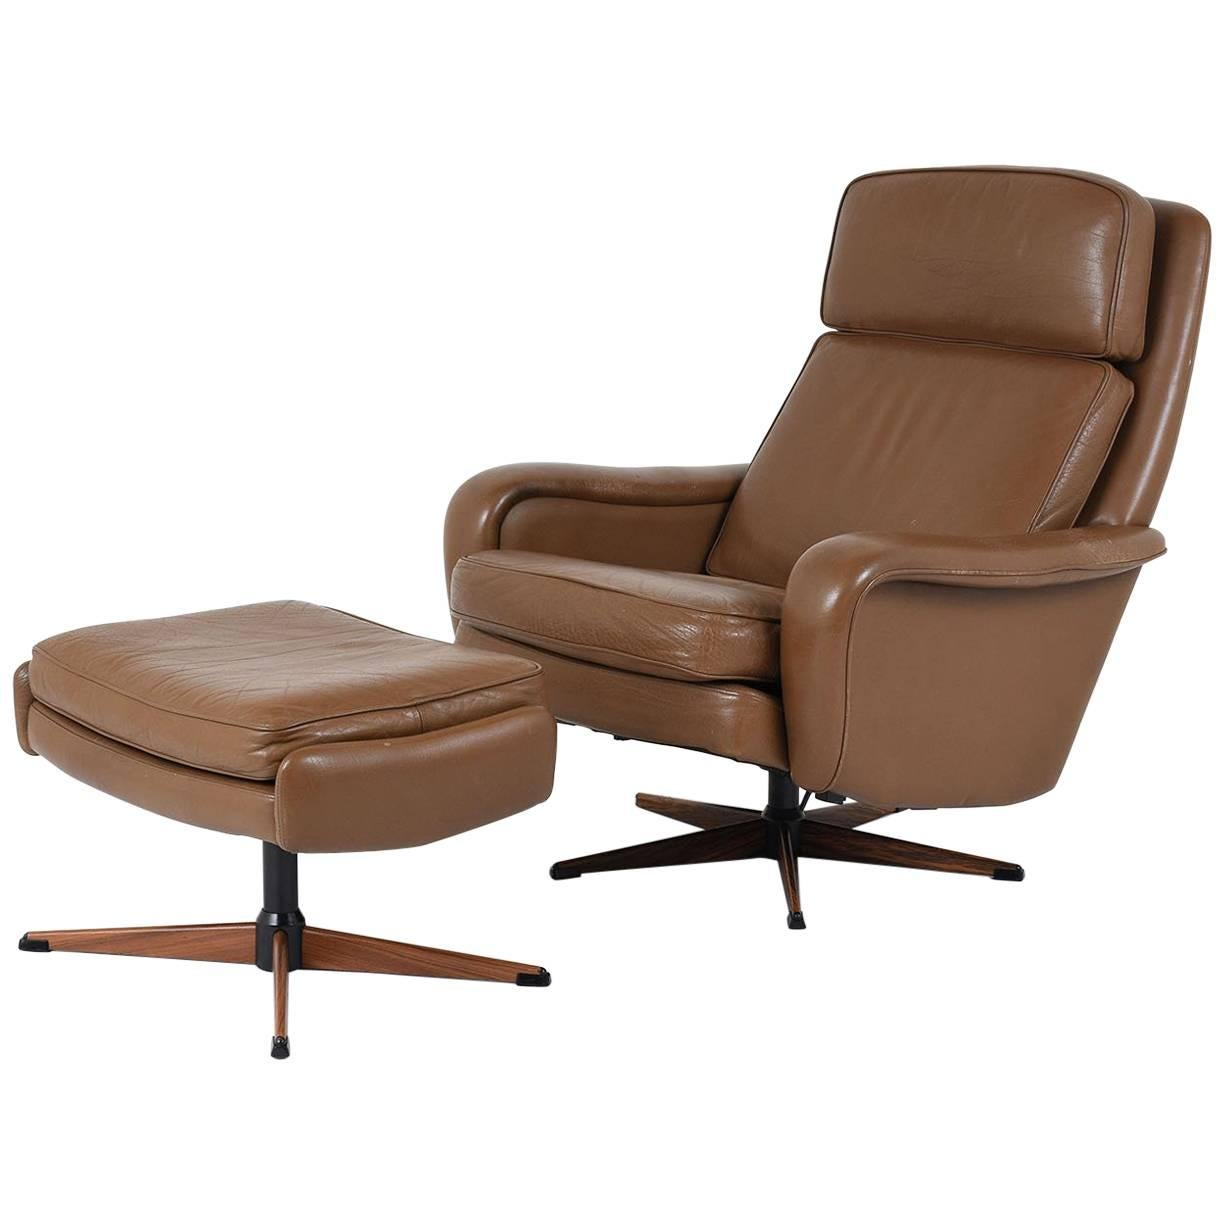 Mid Century Leather Lounge Chair and Ottoman